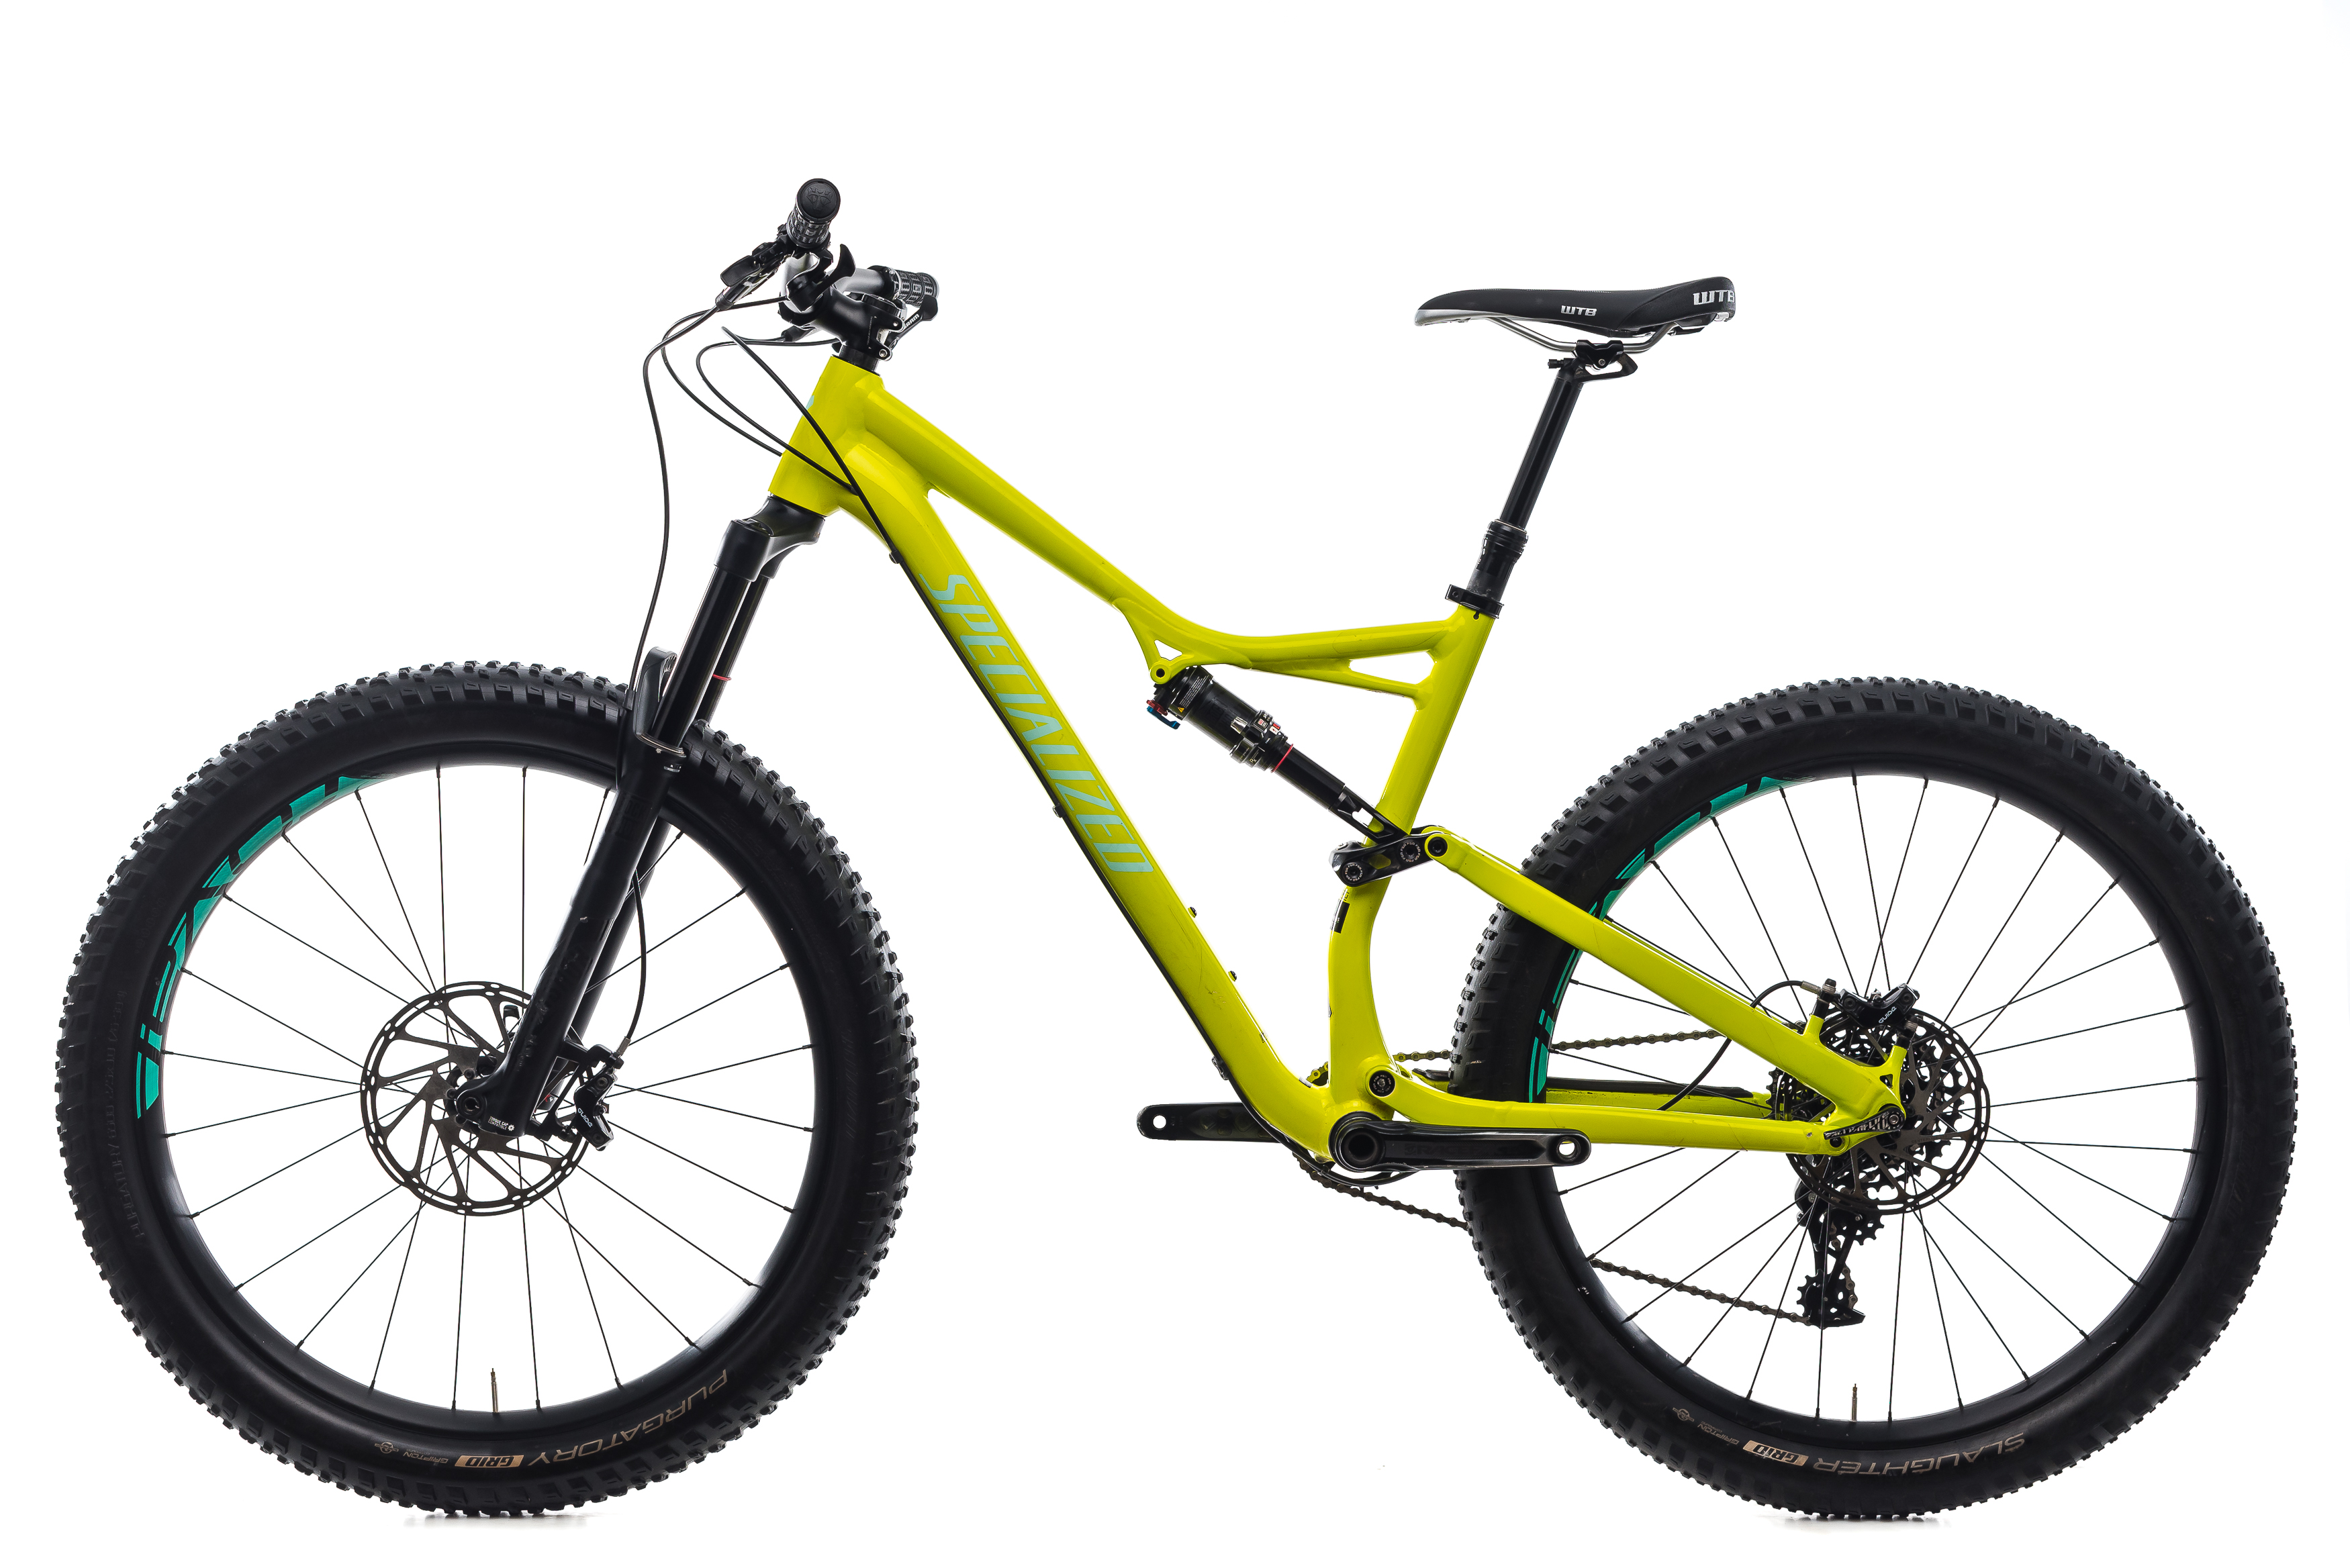 Details about 2018 Specialized Stumpjumper FSR Comp 6Fattie Mountain Bike  Large 27 5 SRAM GX